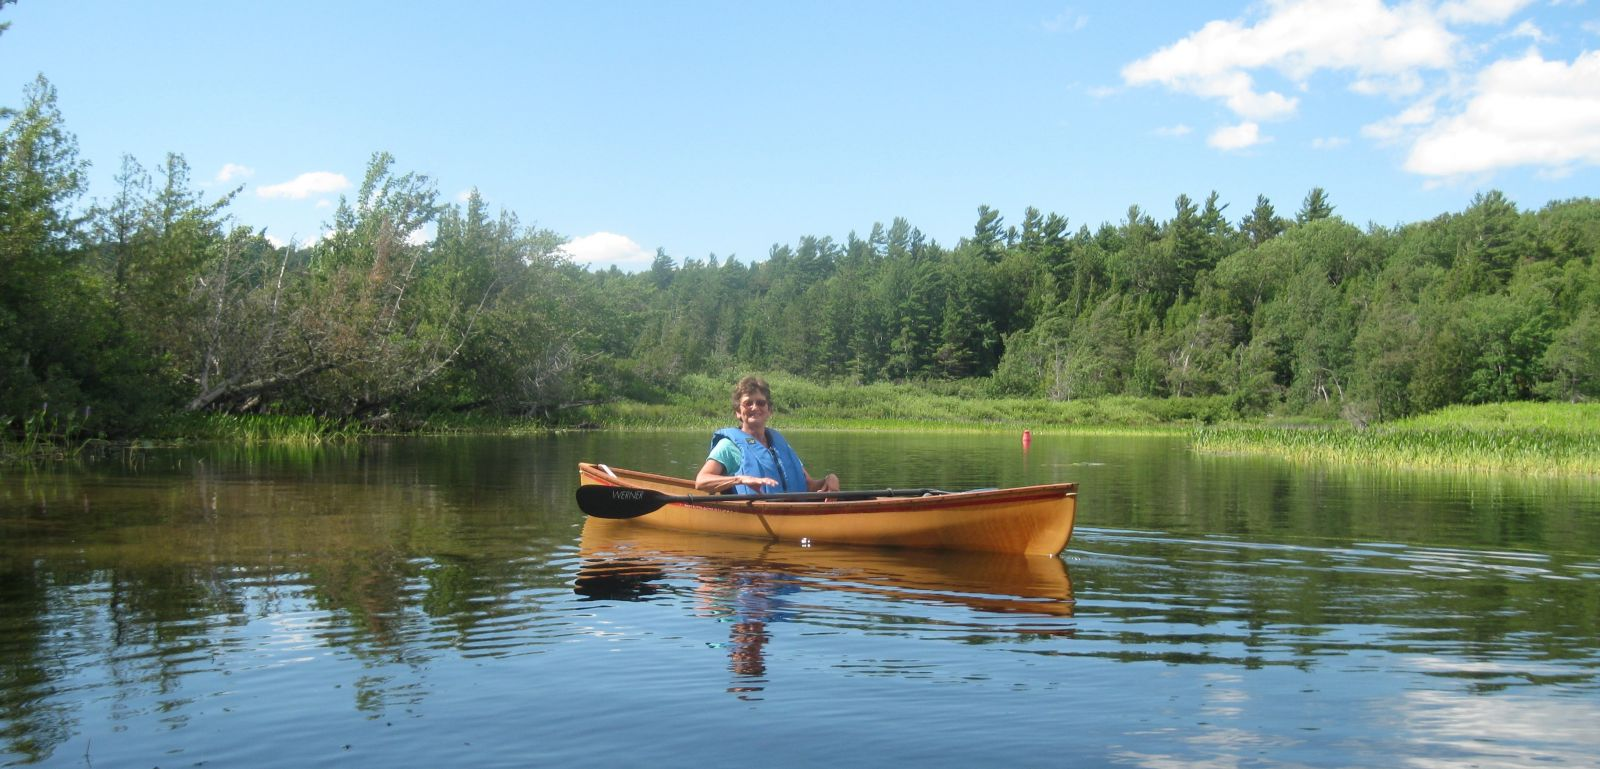 Elaine on the Saranac River, heading back to South Creek.